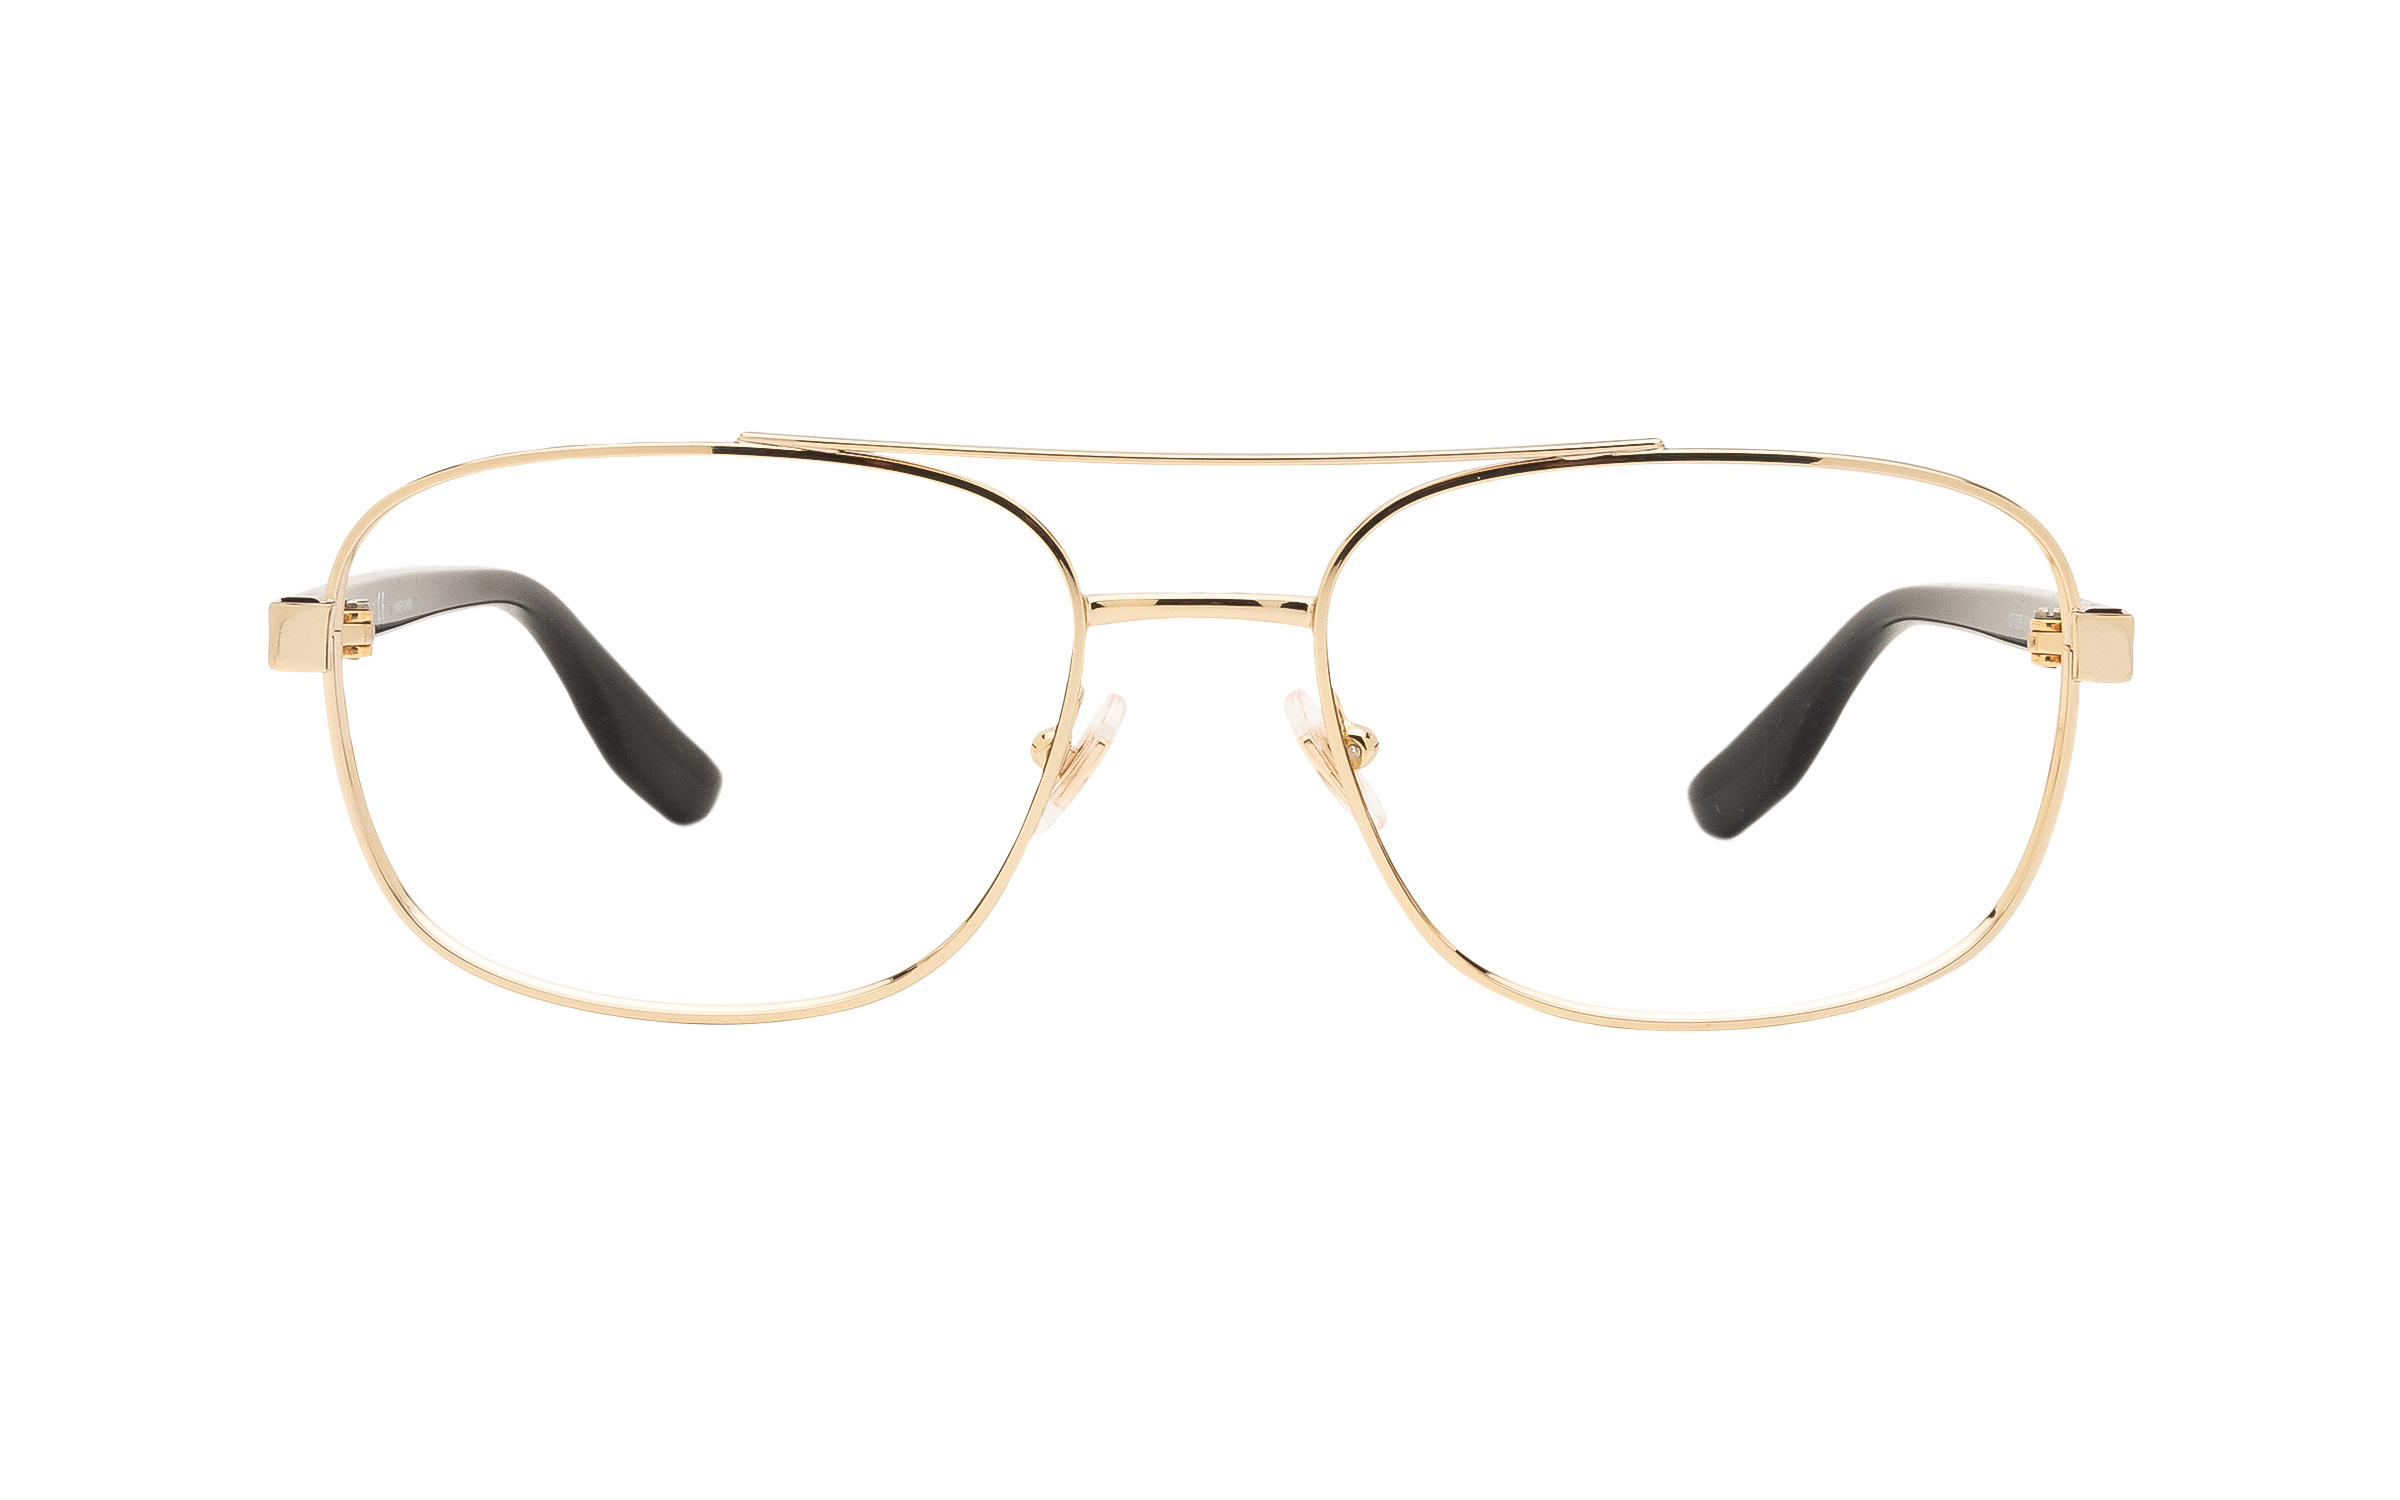 coastal.com - Chaps CP2089 9116 (55) Eyeglasses and Frame in Pale Gold | Acetate/Metal – Online Coastal 76.00 USD